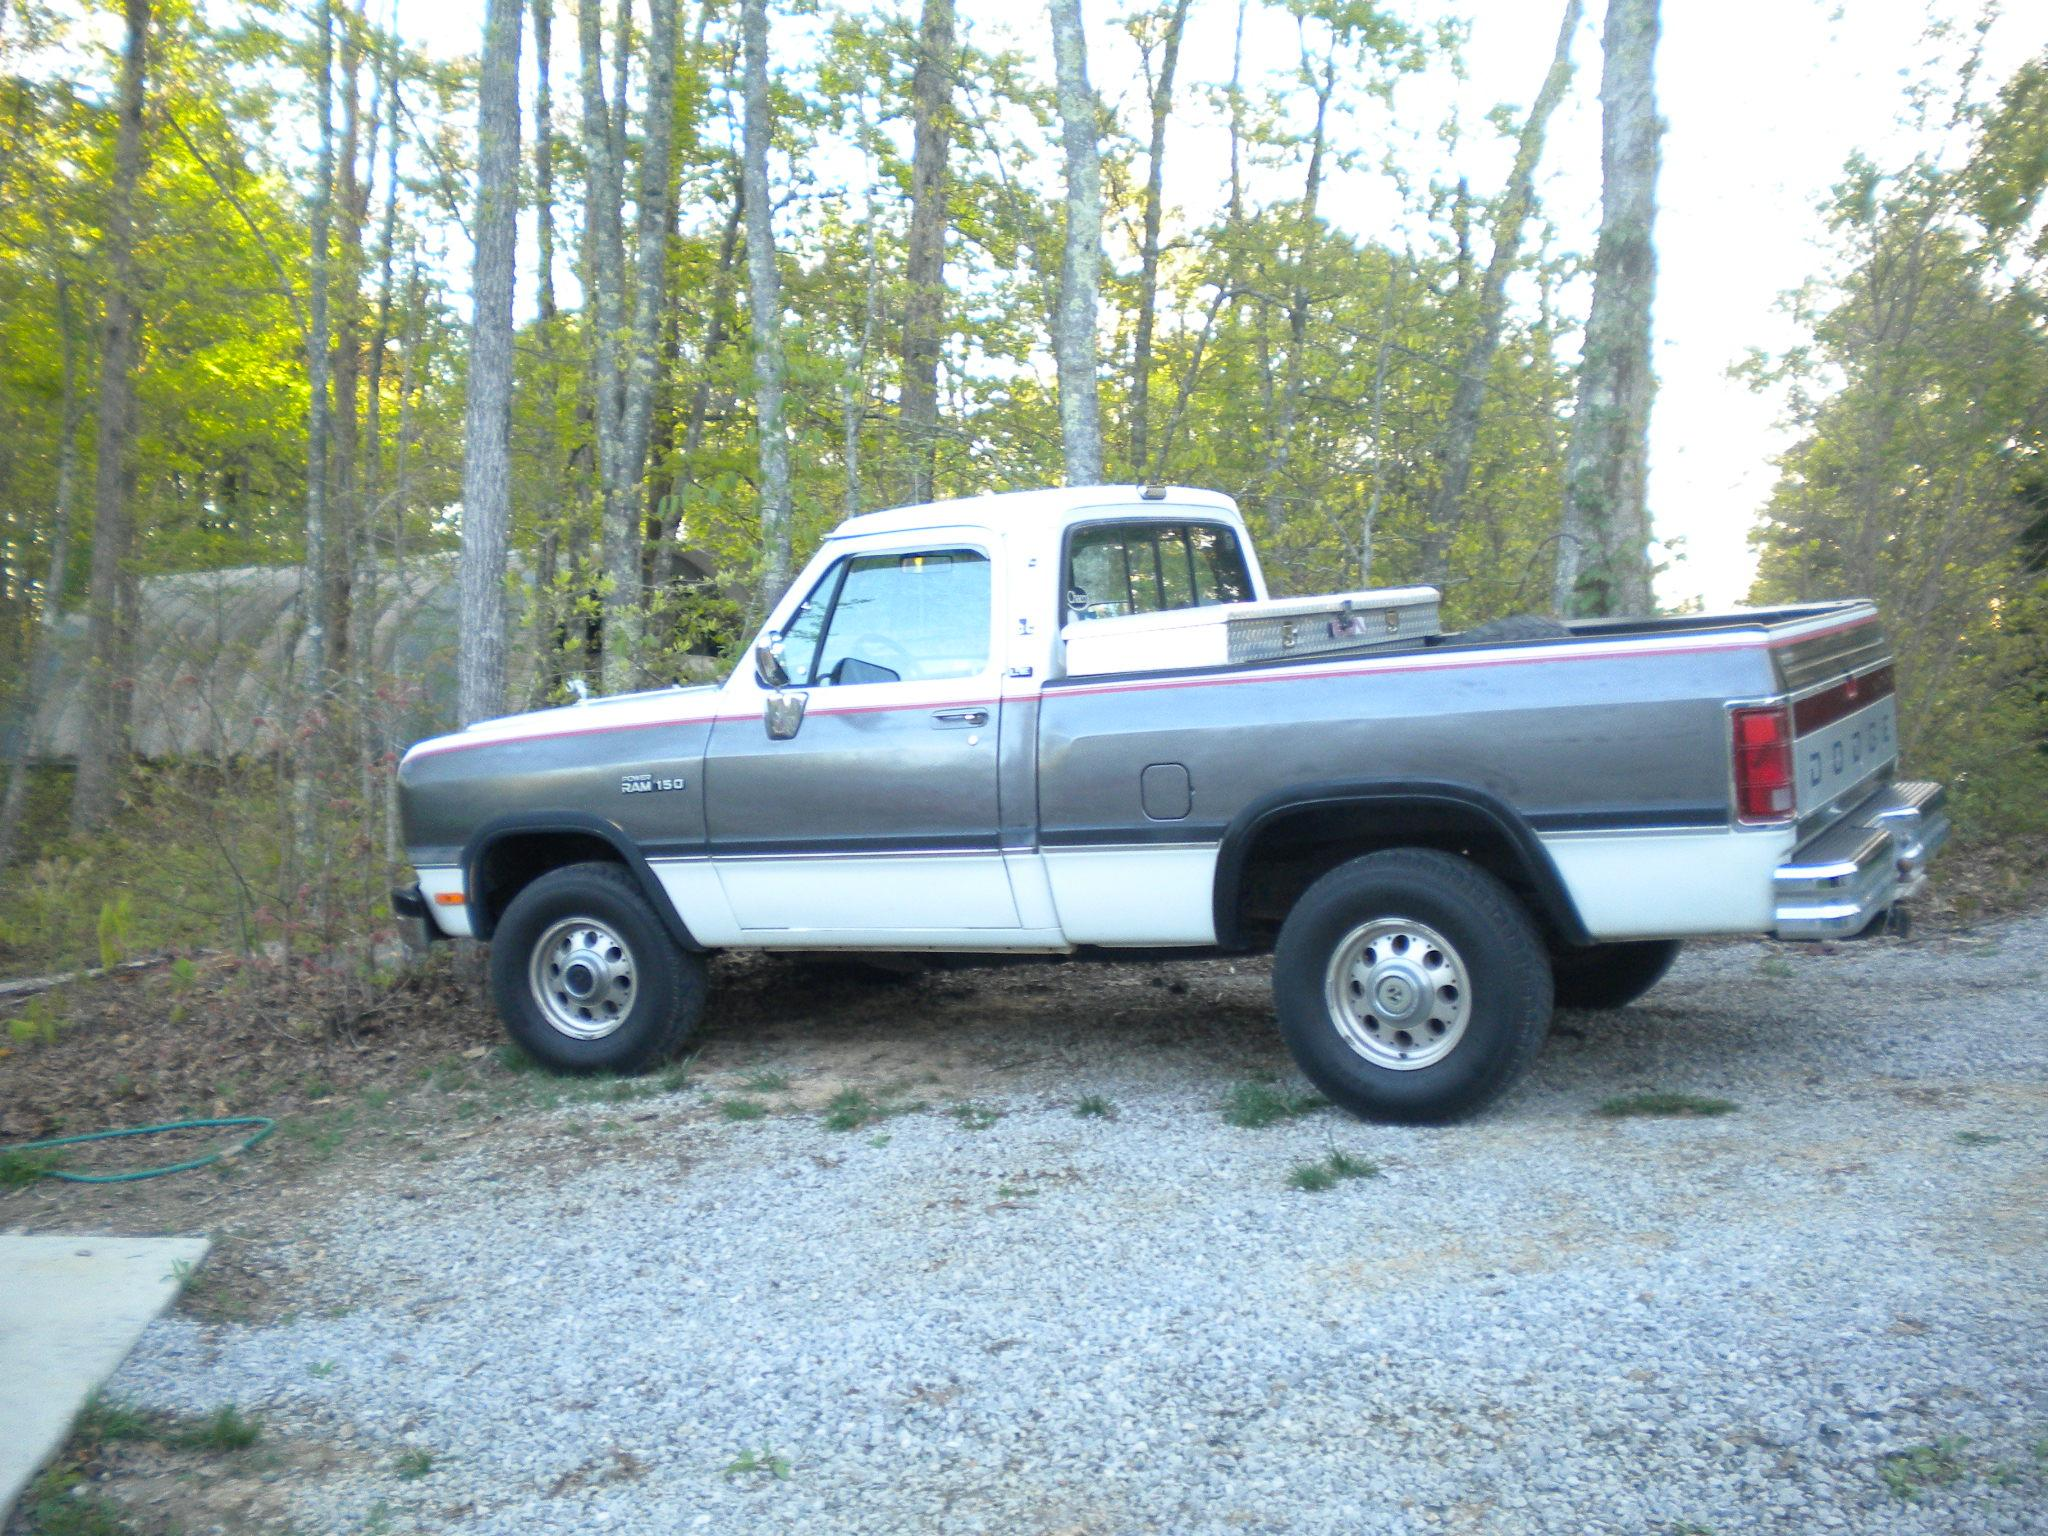 ronniep's 1992 Dodge Power Ram